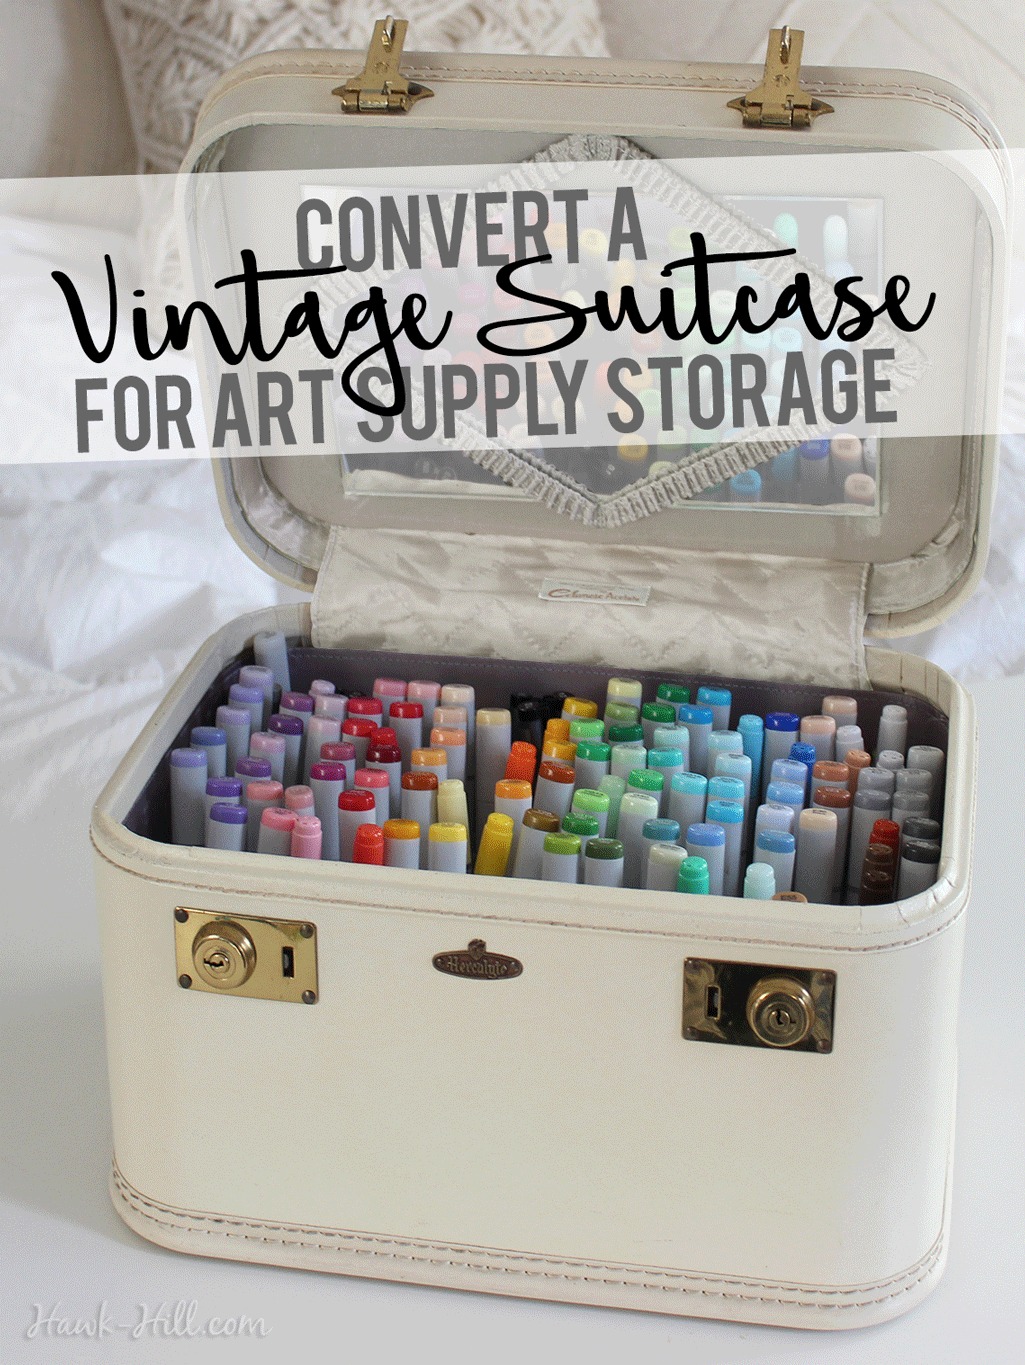 how to convert a vintage cosmetic suitcase into an organized art supply storage hawk hill. Black Bedroom Furniture Sets. Home Design Ideas